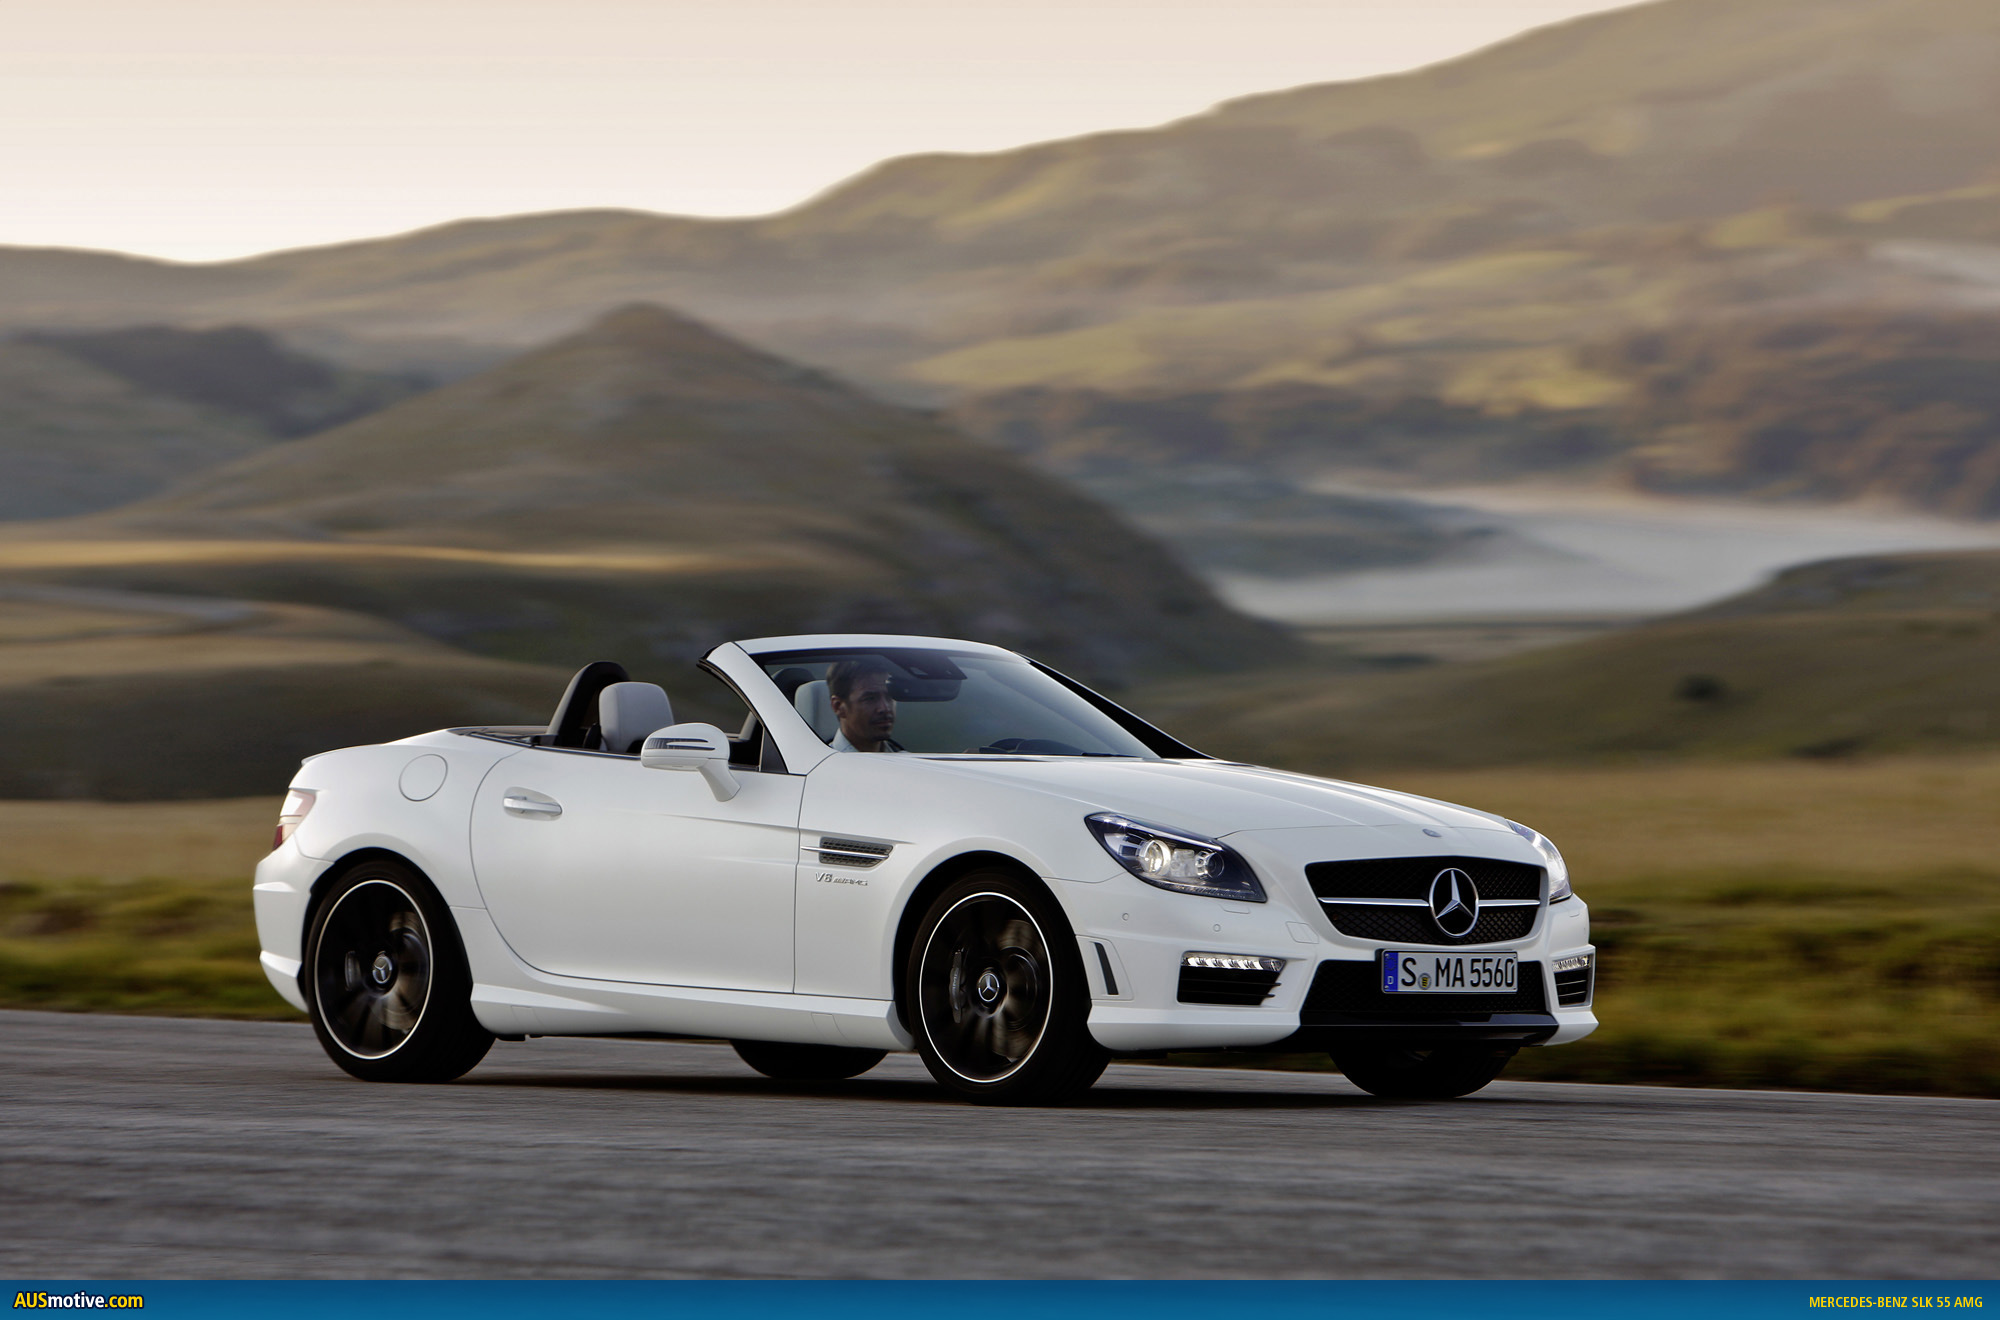 2012 mercedes benz slk 55 amg for Mercedes benz slk 55